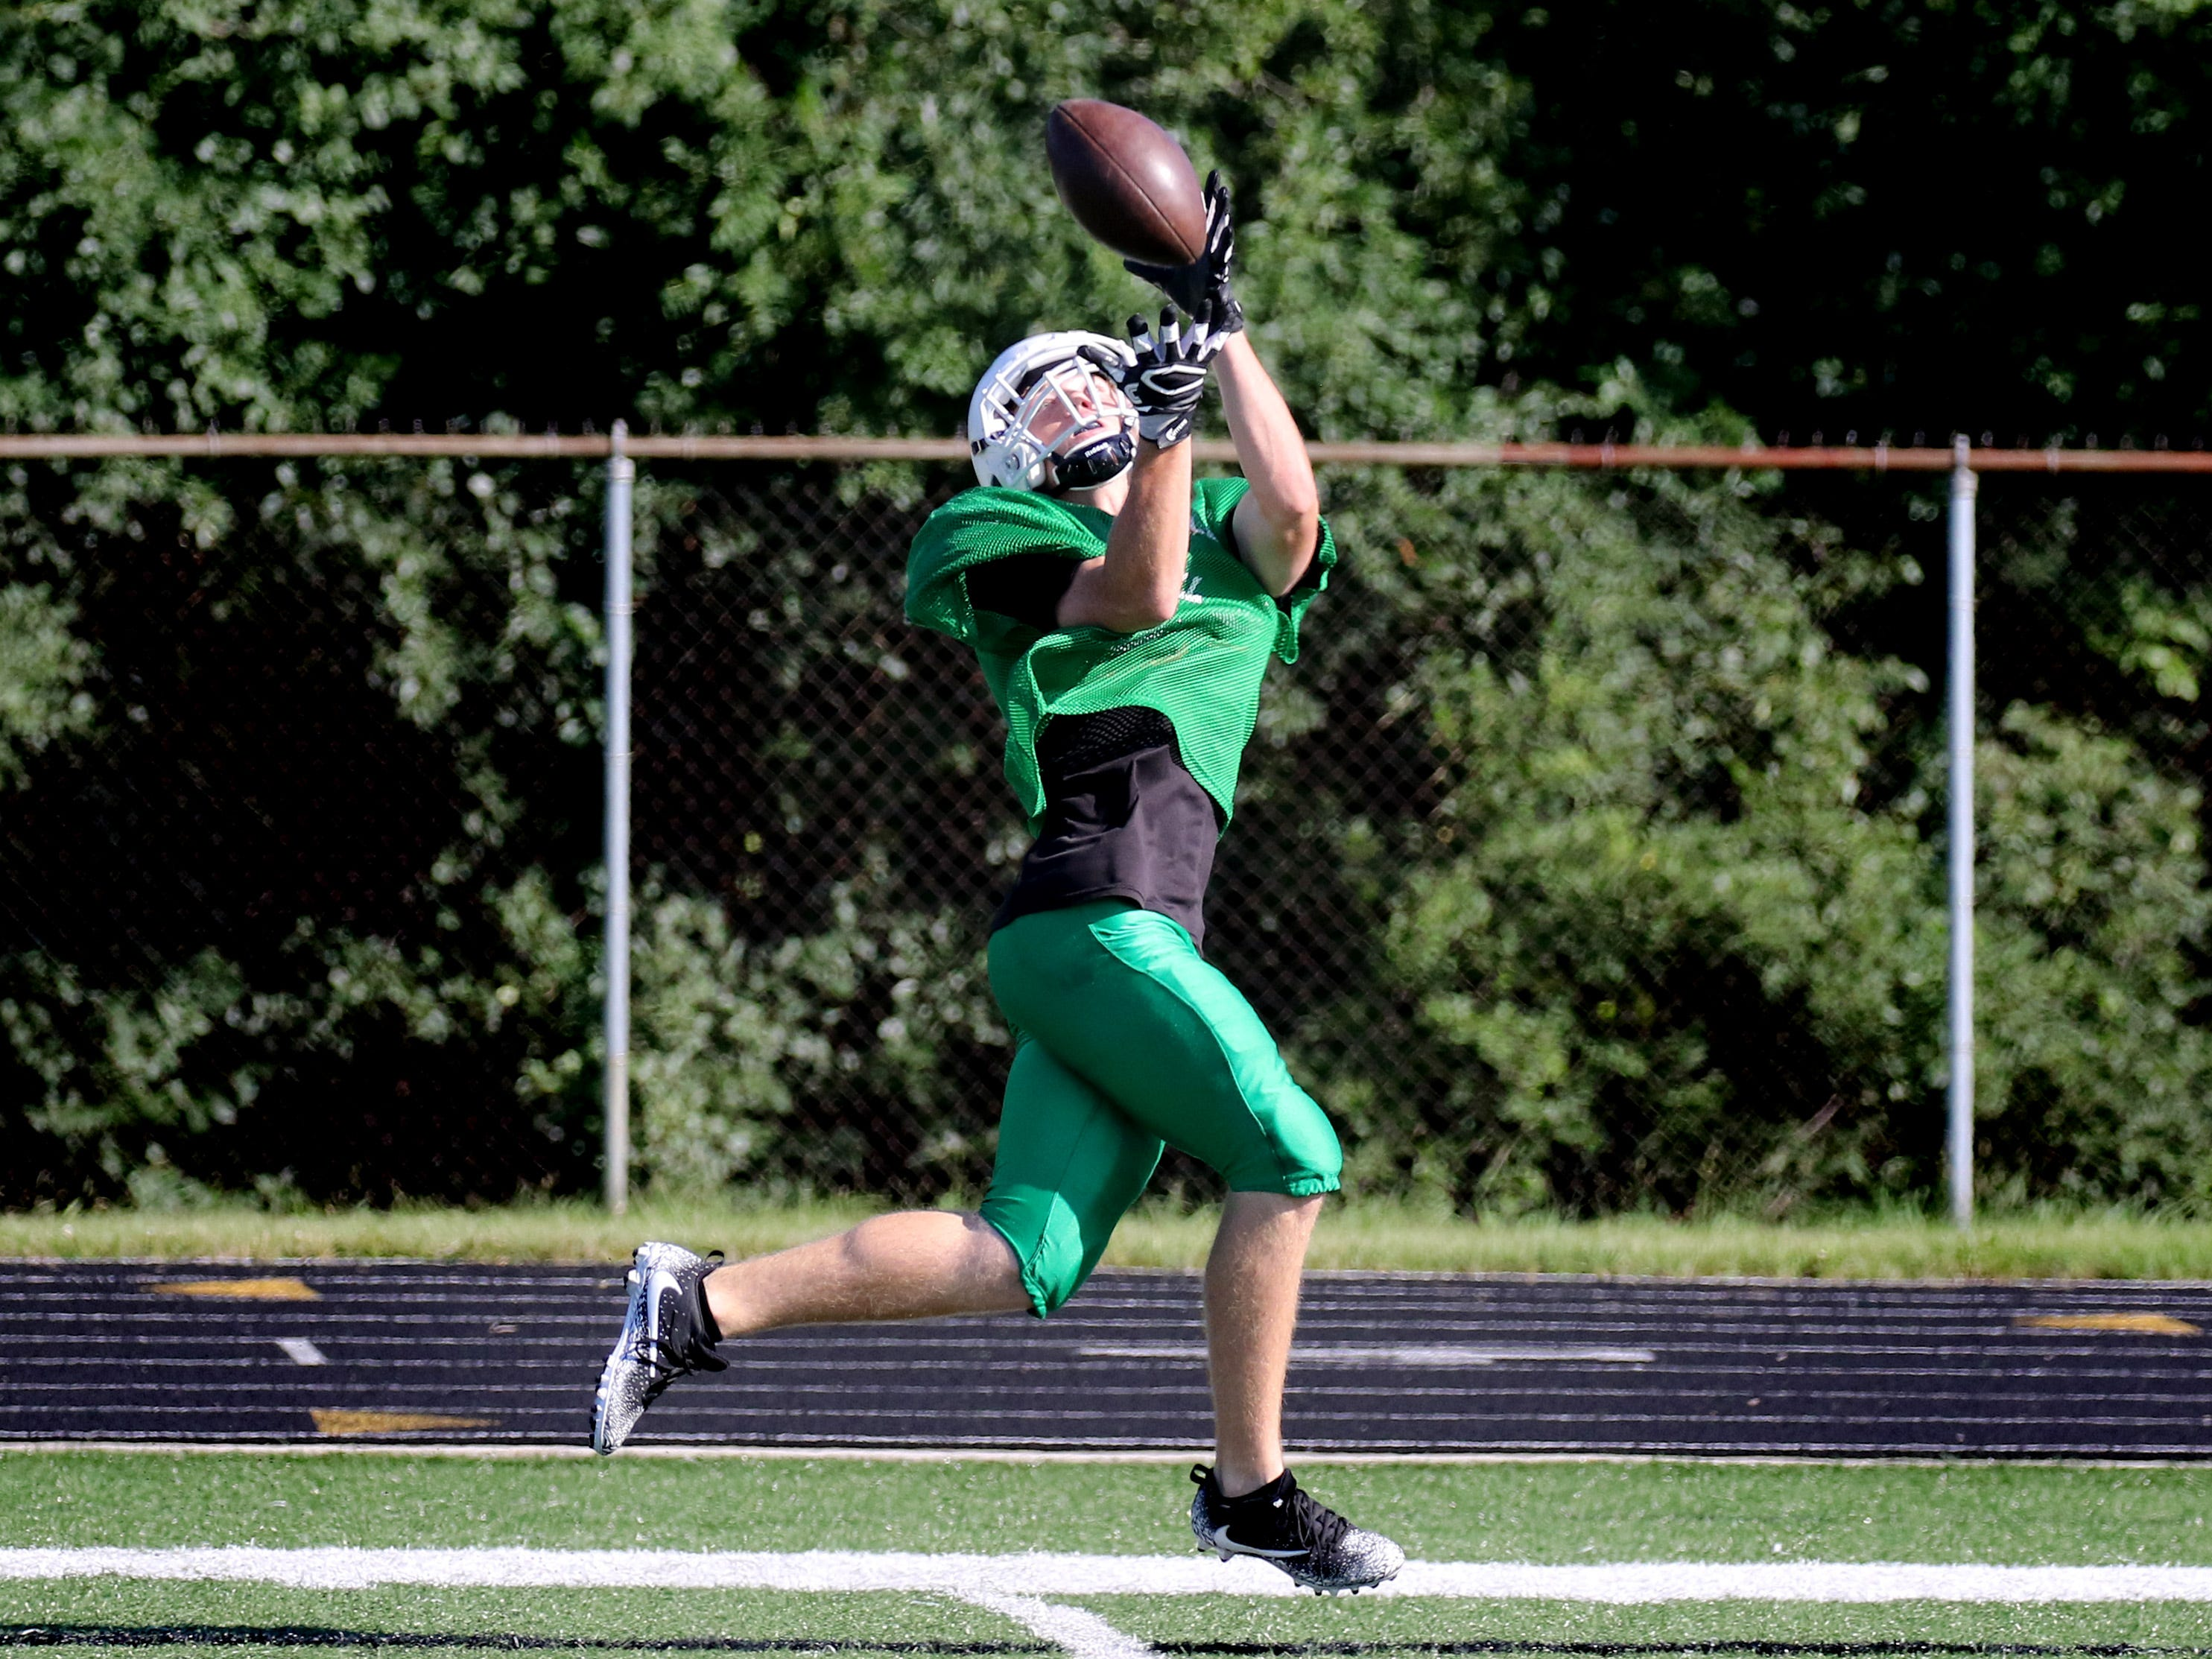 A Greendale receiver heads for a touchdown untouched by Milwaukee Riverside defenders during a scrimmage at Greendale High School on Aug. 10.